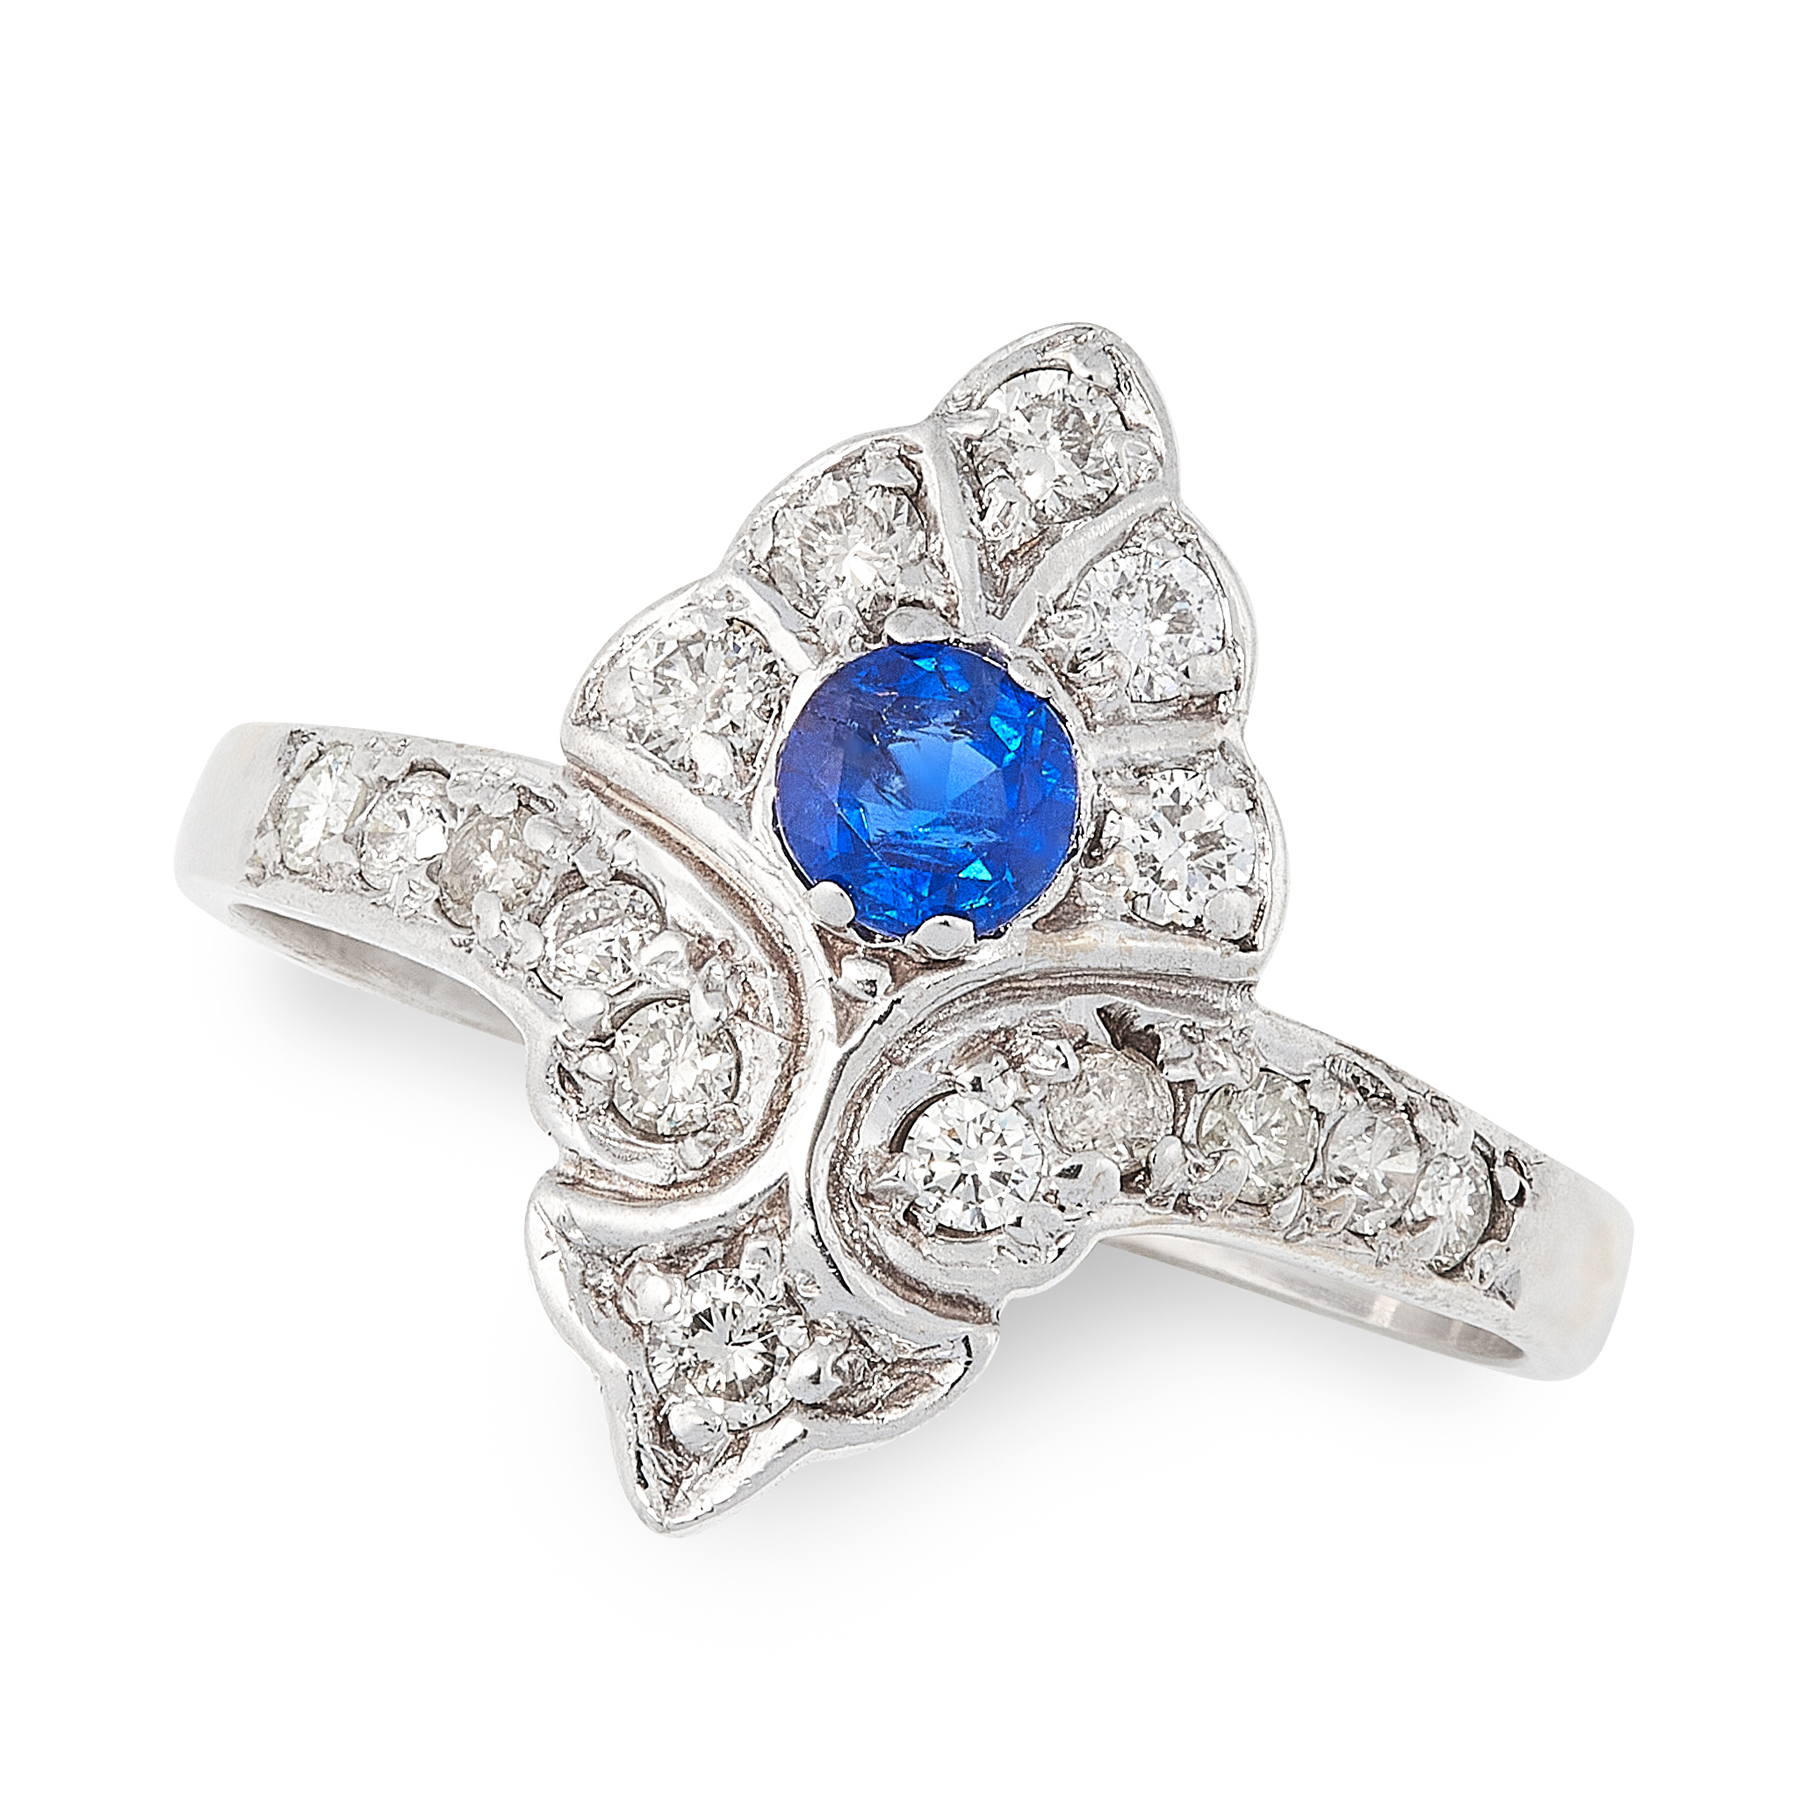 A SAPPHIRE AND DIAMOND DRESS RING of shield design, set with a round cut sapphire accented by